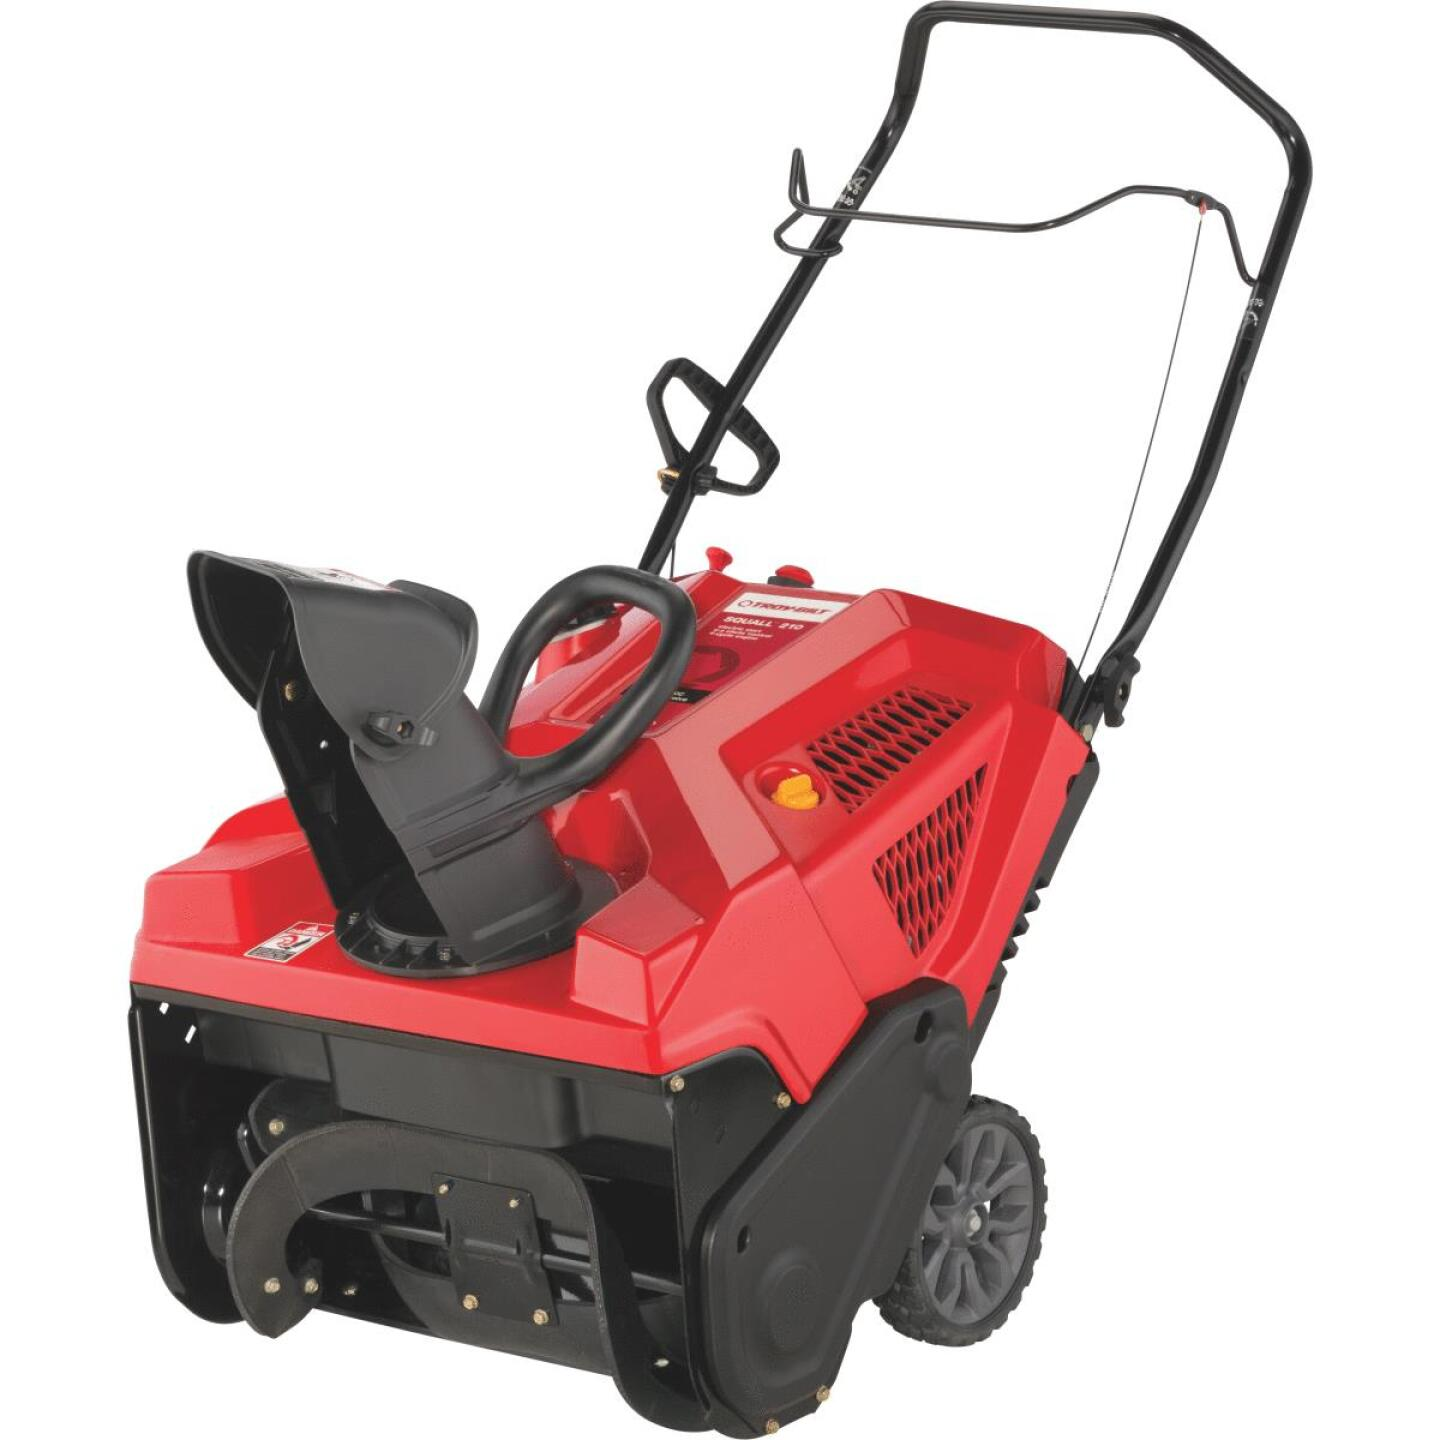 Troy-Bilt Squall 210 21 In. 179cc Single-Stage Gas Snow Blower Image 1